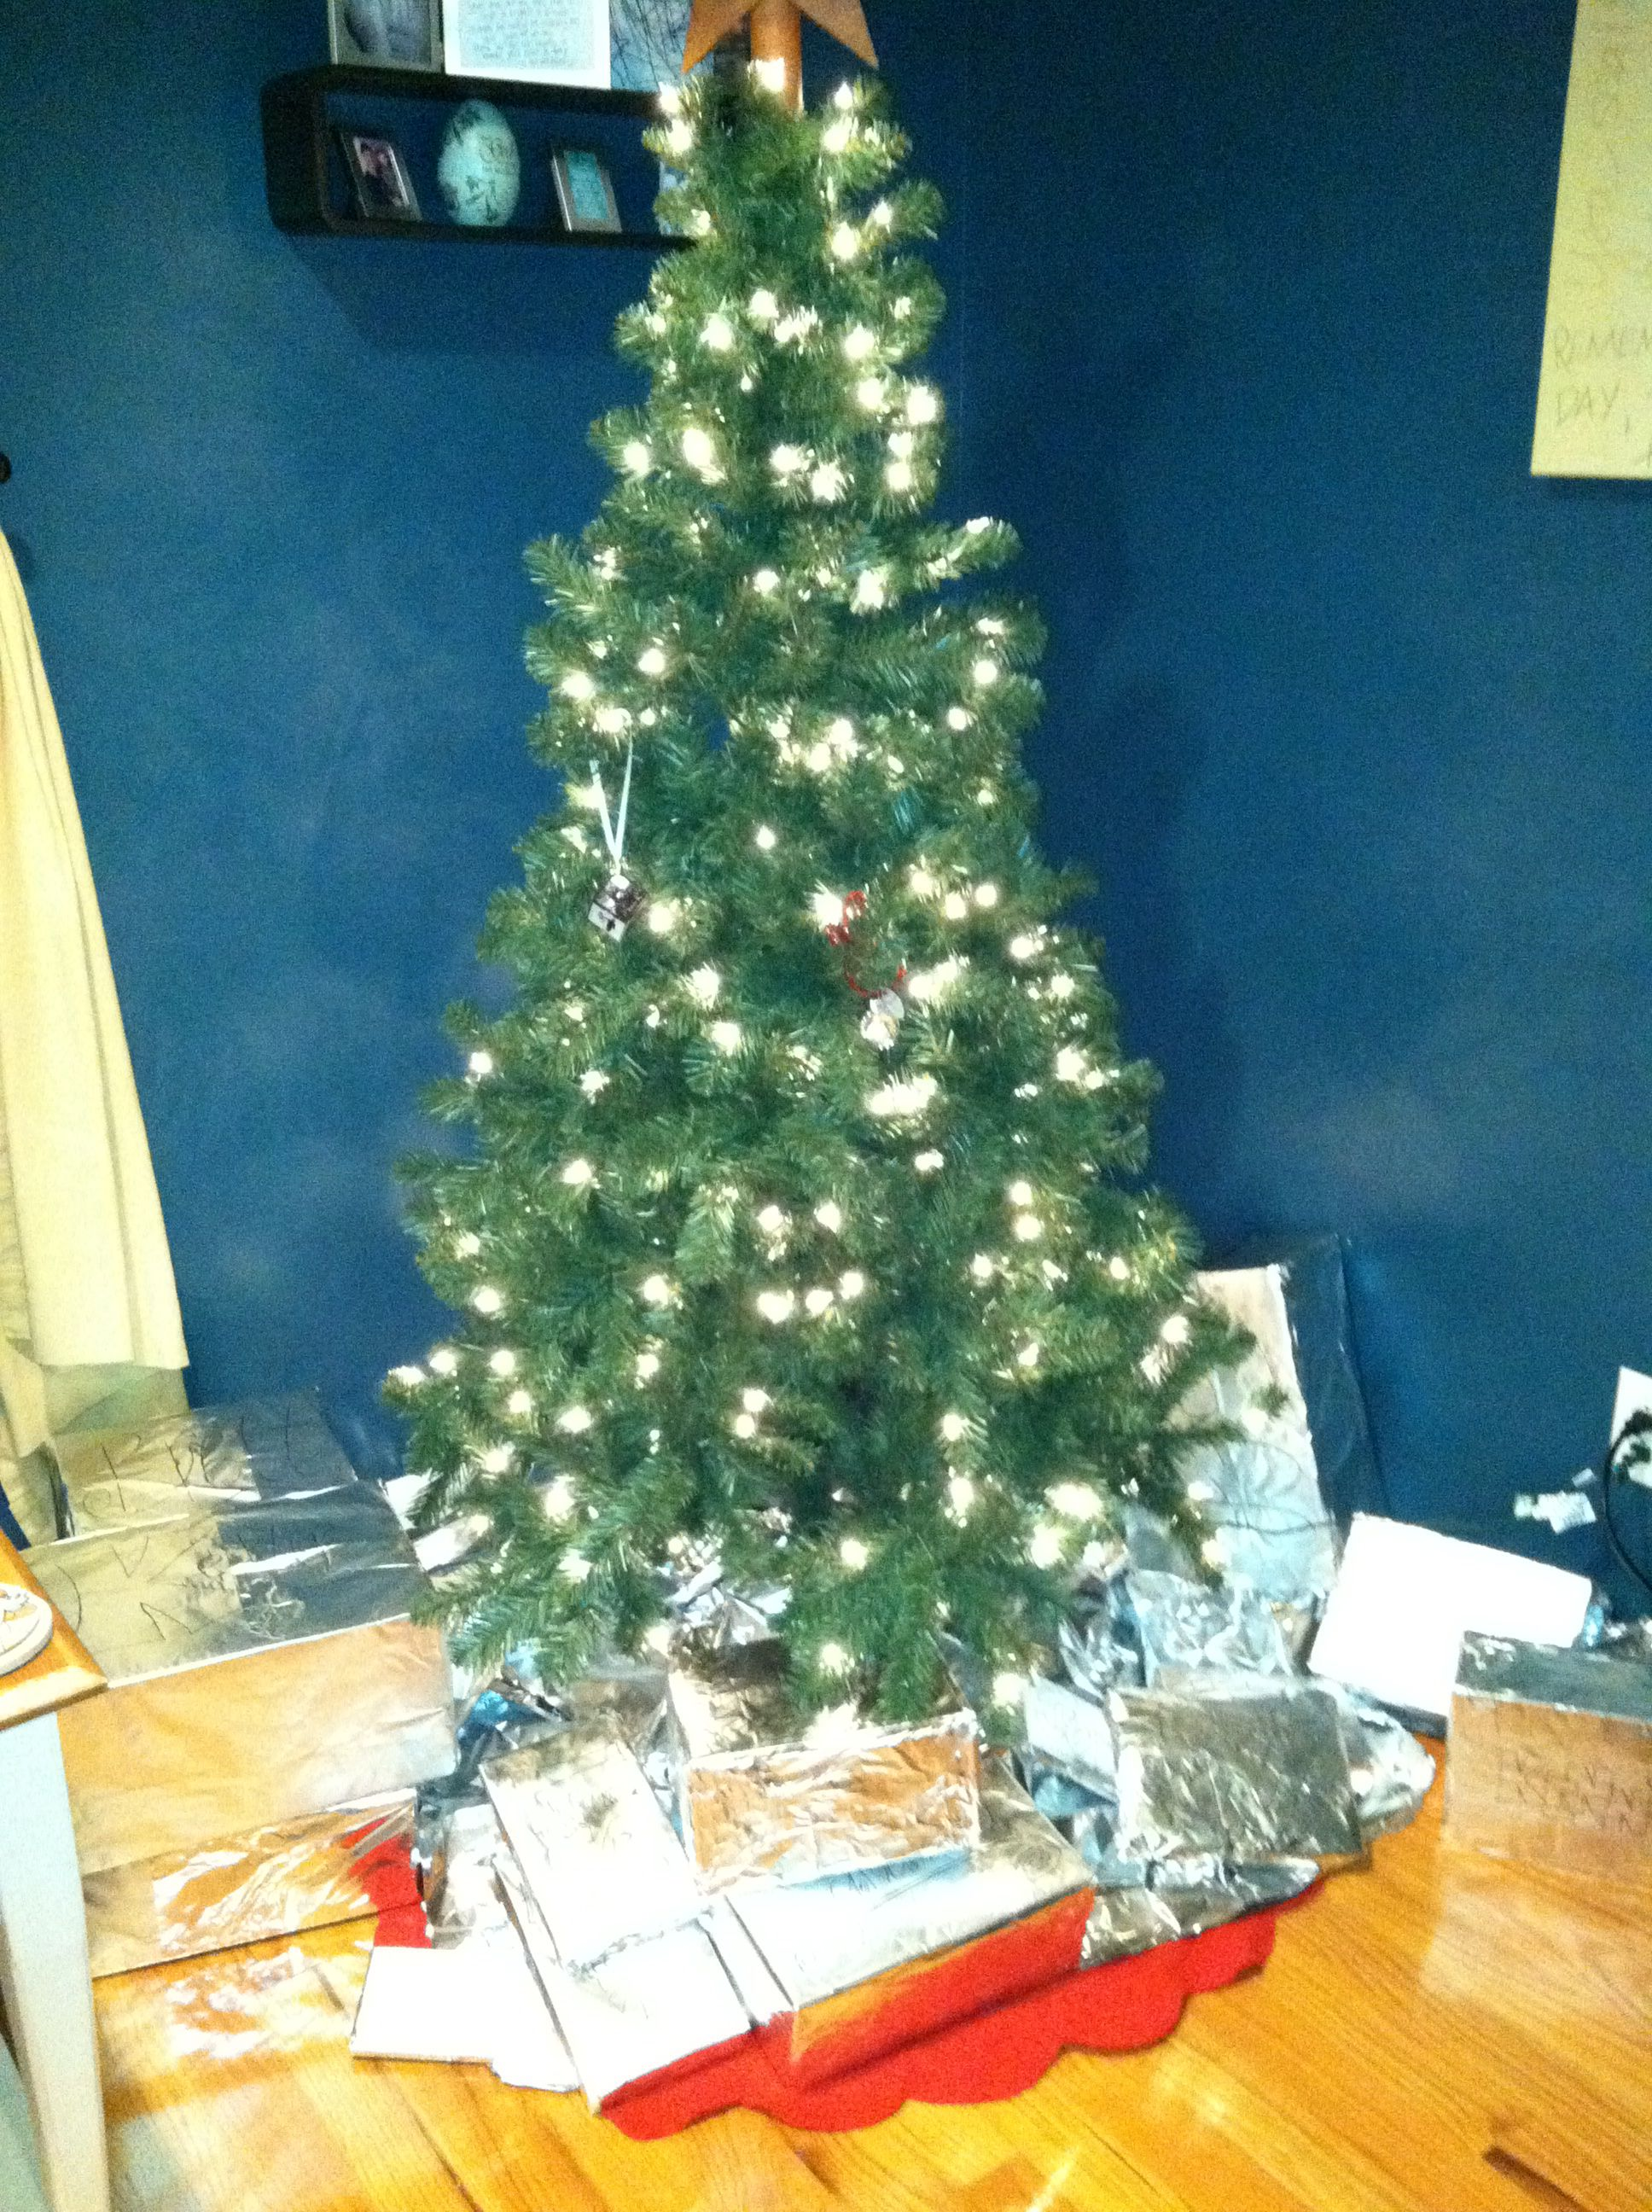 A Cat Proof Christmas Aluminum Foil Tree Skirt And Foil Wrapped